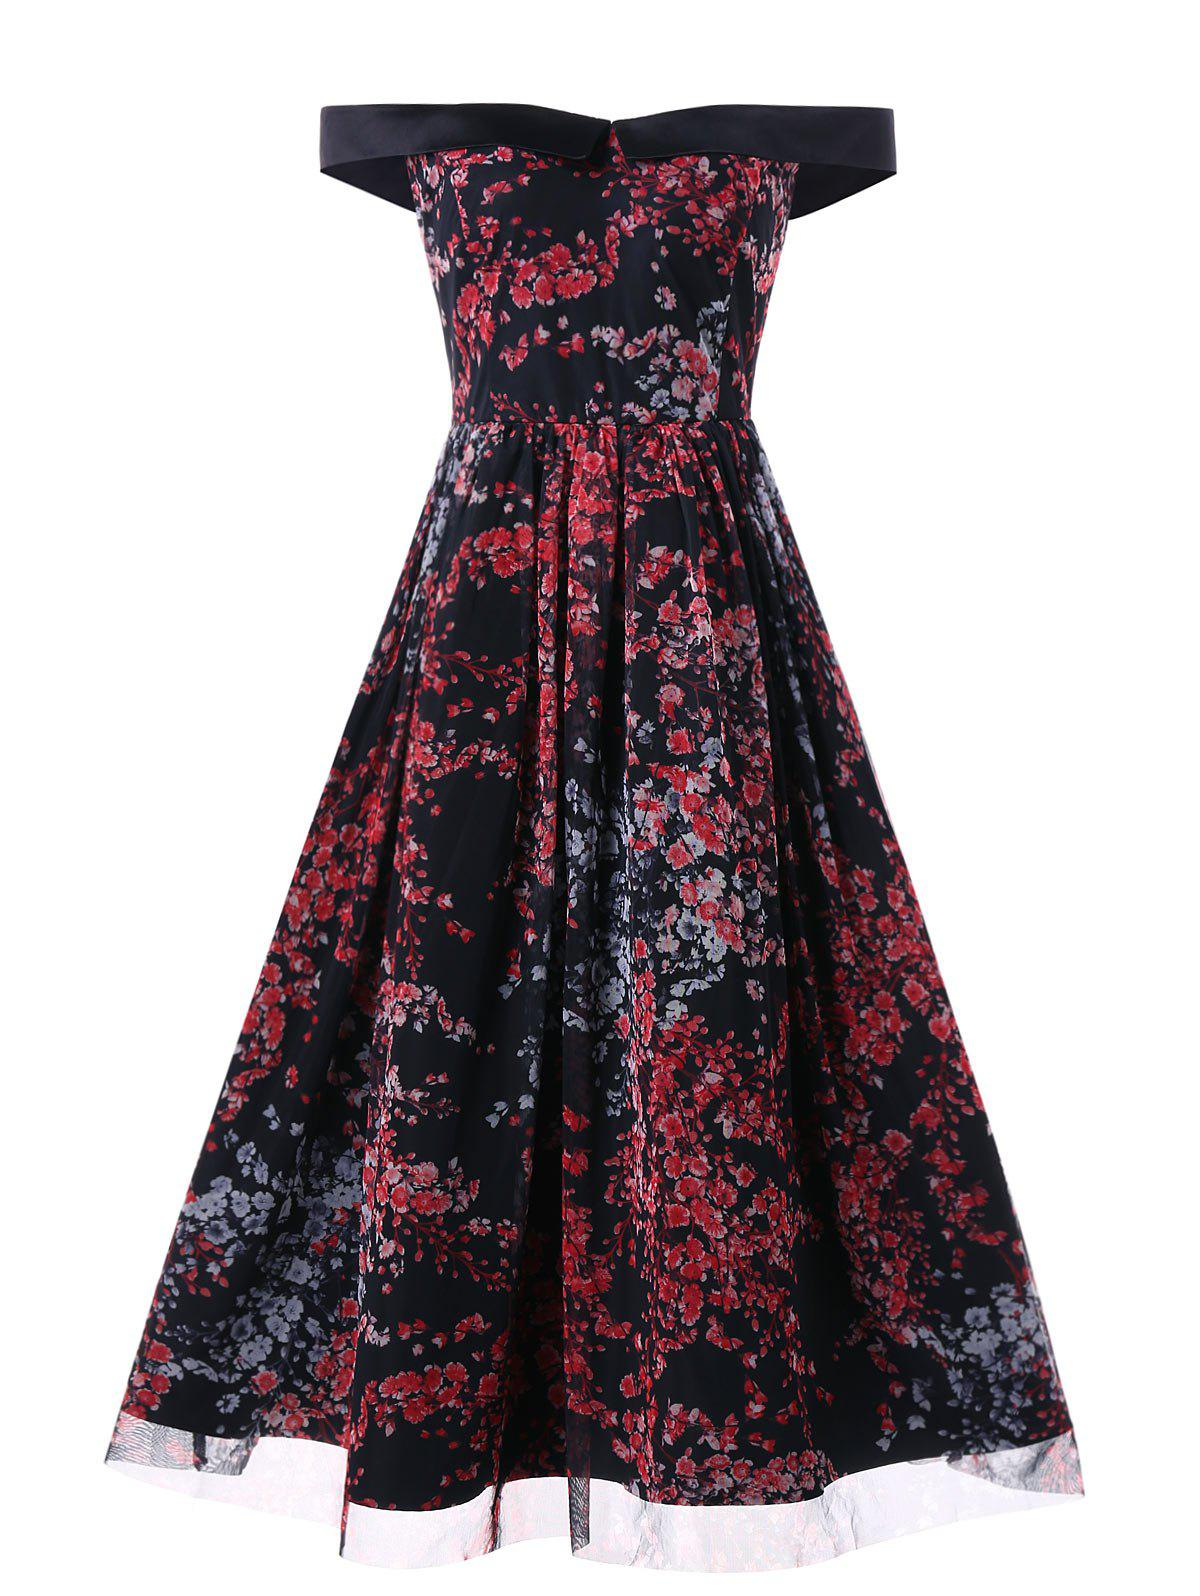 Trendy Mesh Insert Floral Print Vintage Dress